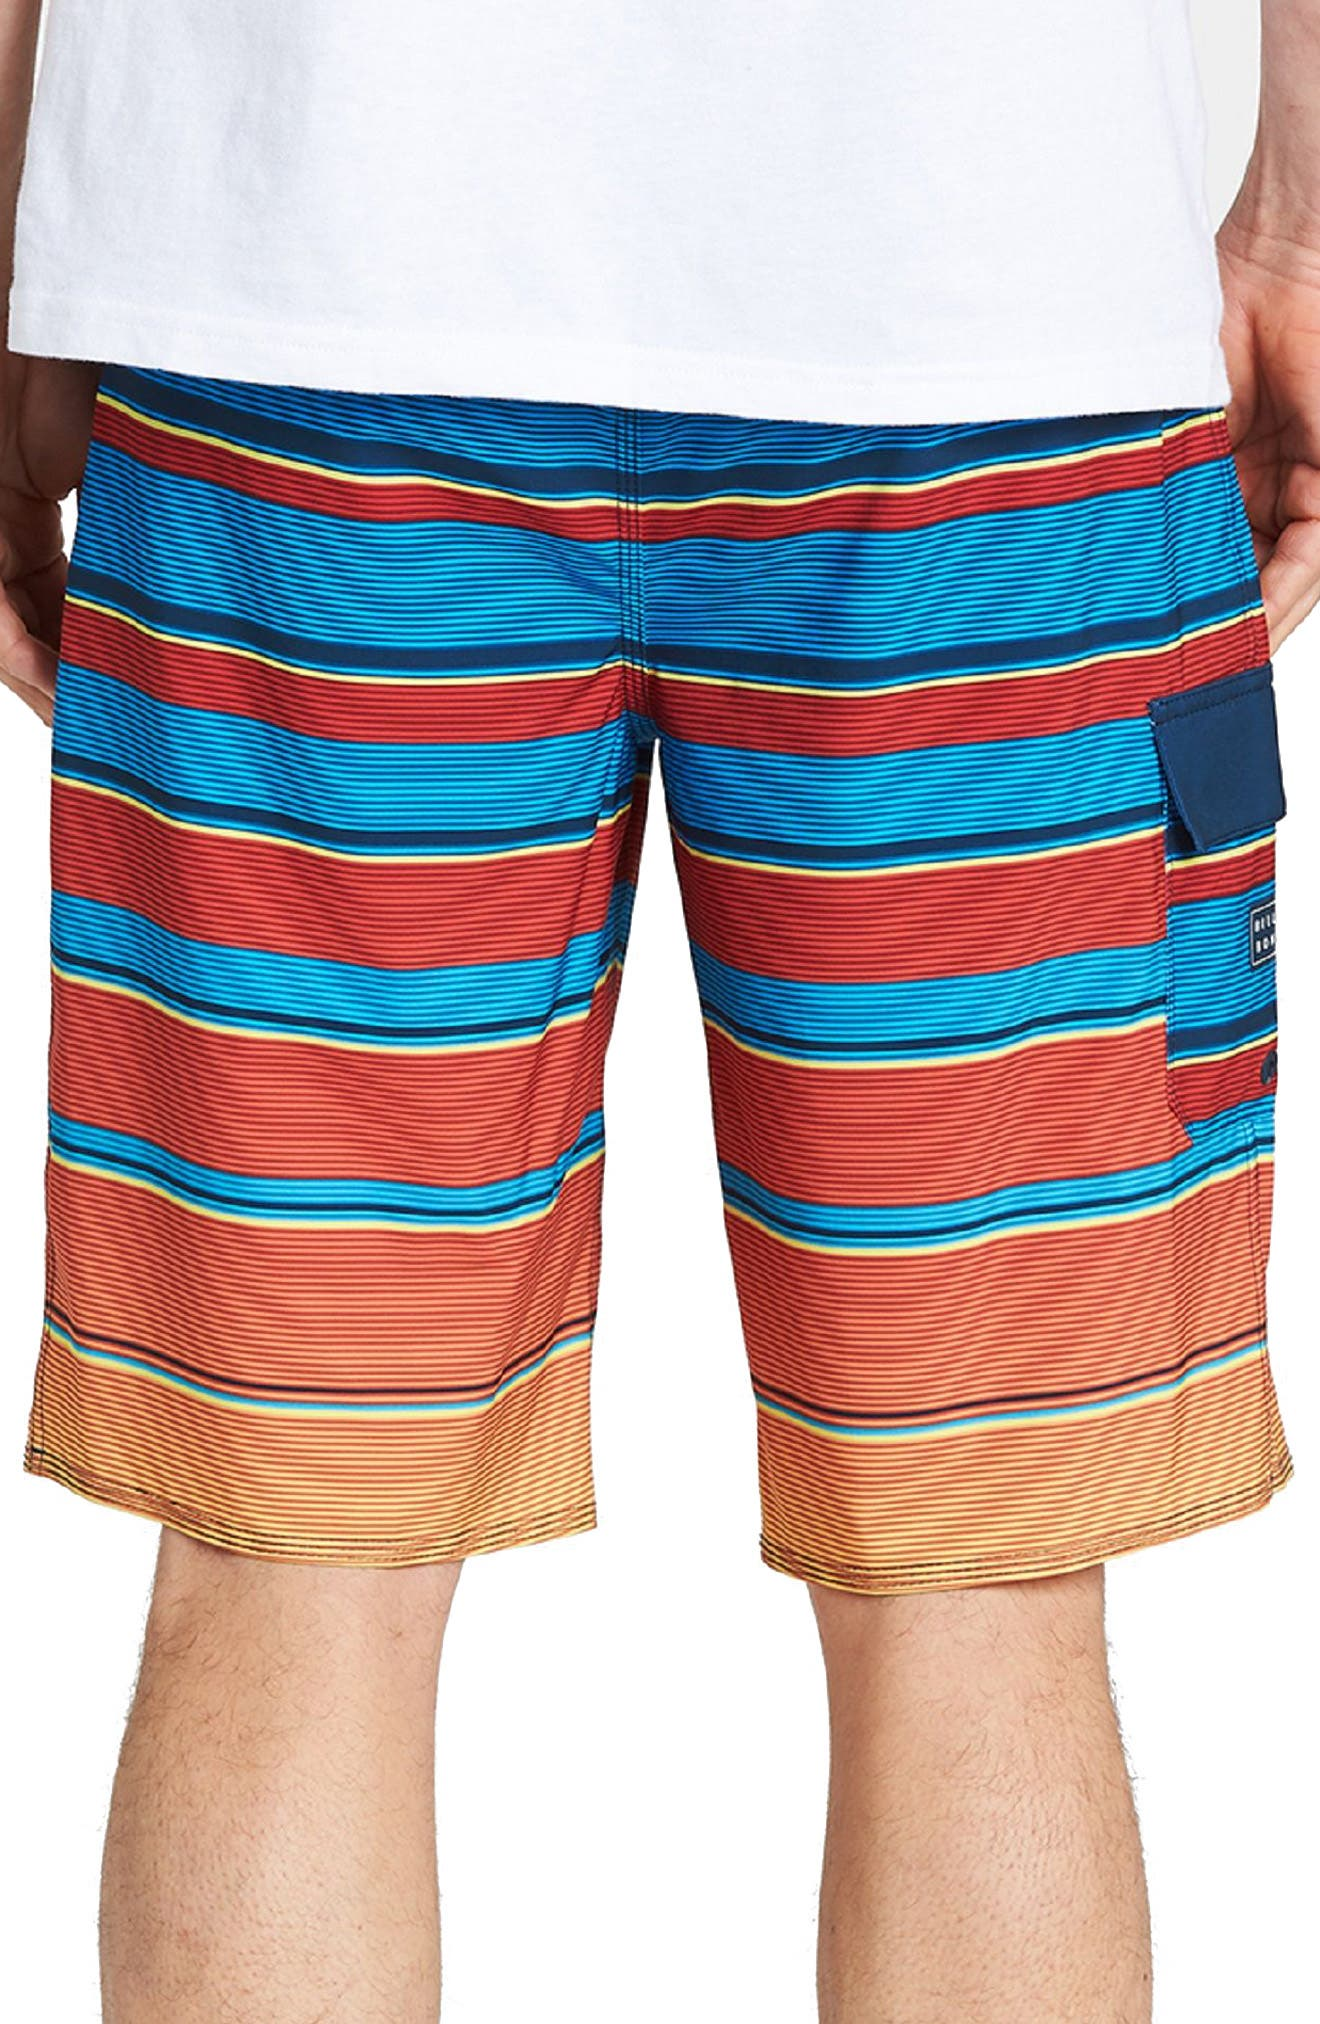 All Day X Stripe Board Shorts,                             Alternate thumbnail 2, color,                             Blue